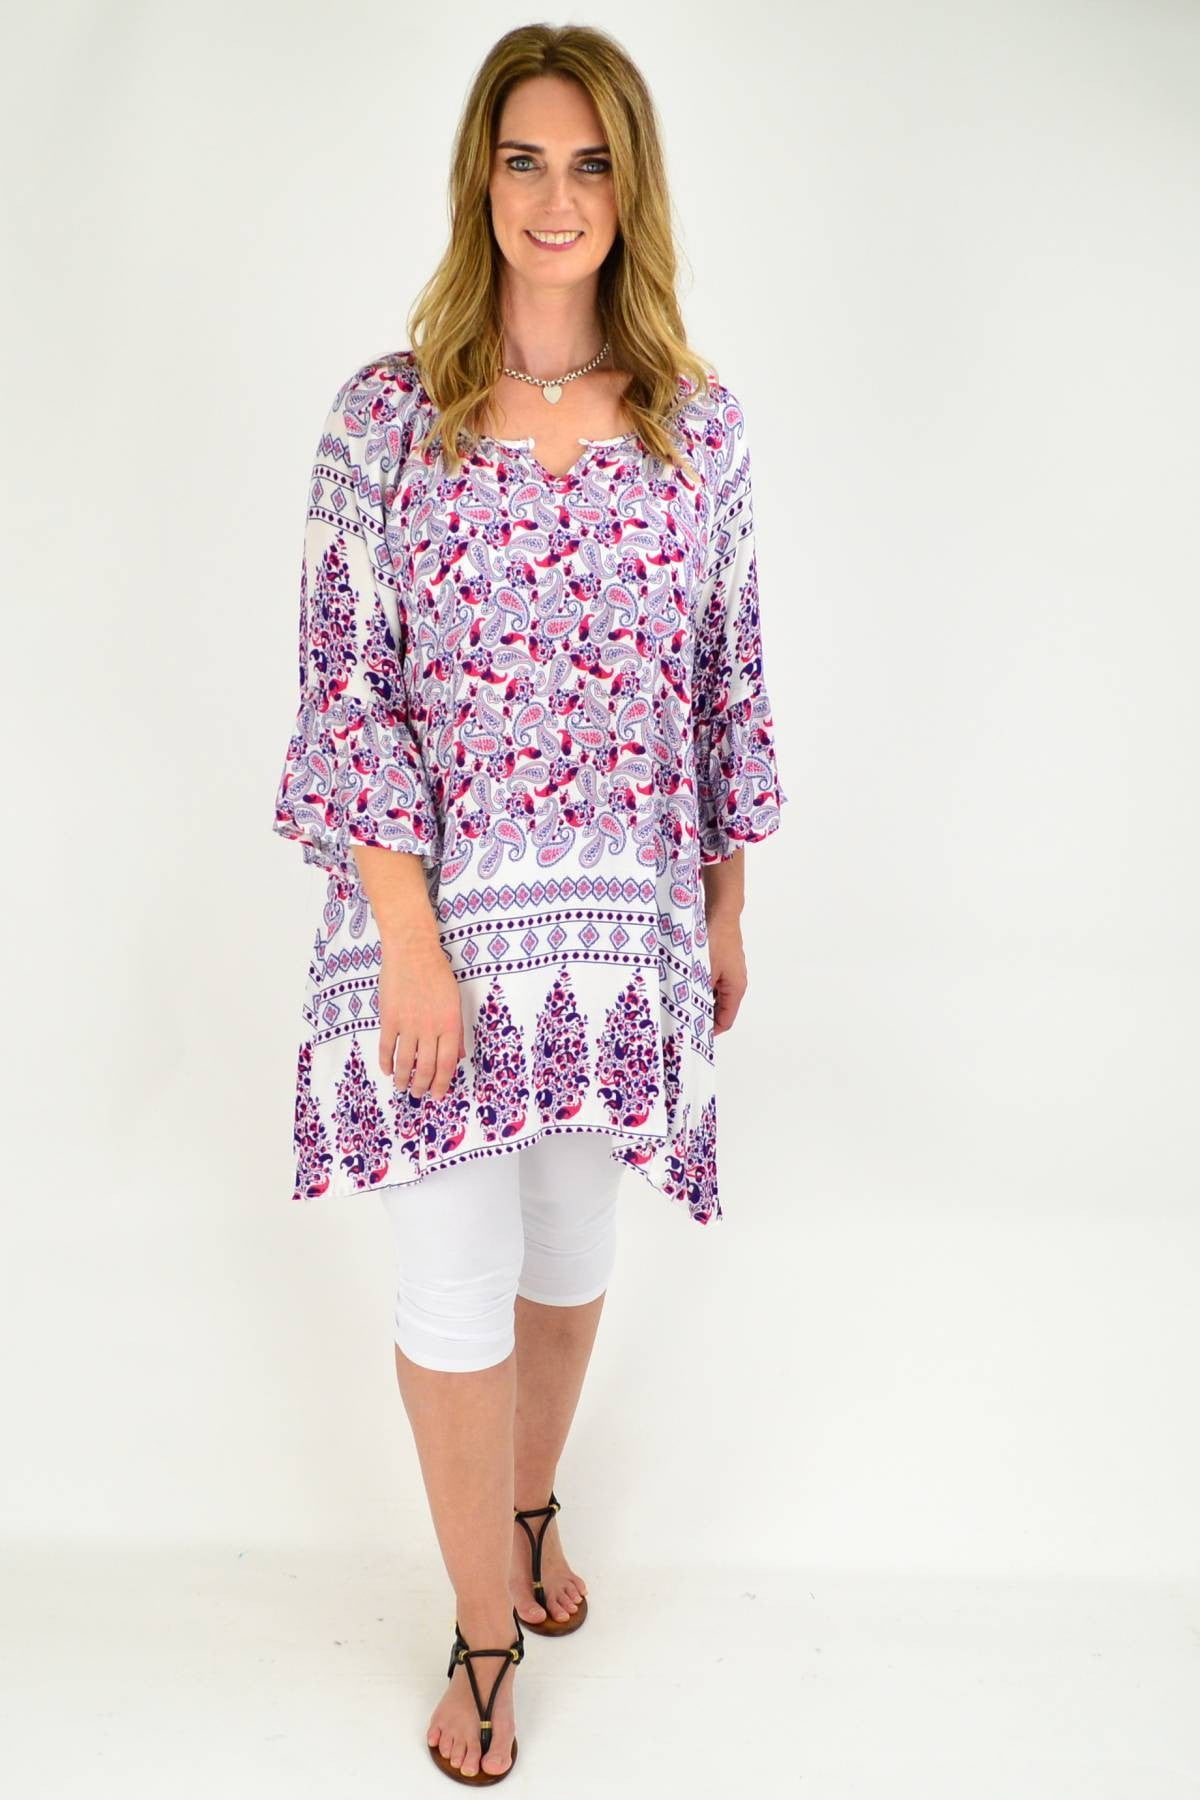 Relaxed Ruby Tunic Top | I Love Tunics | Tunic Tops | Tunic | Tunic Dresses  | womens clothing online